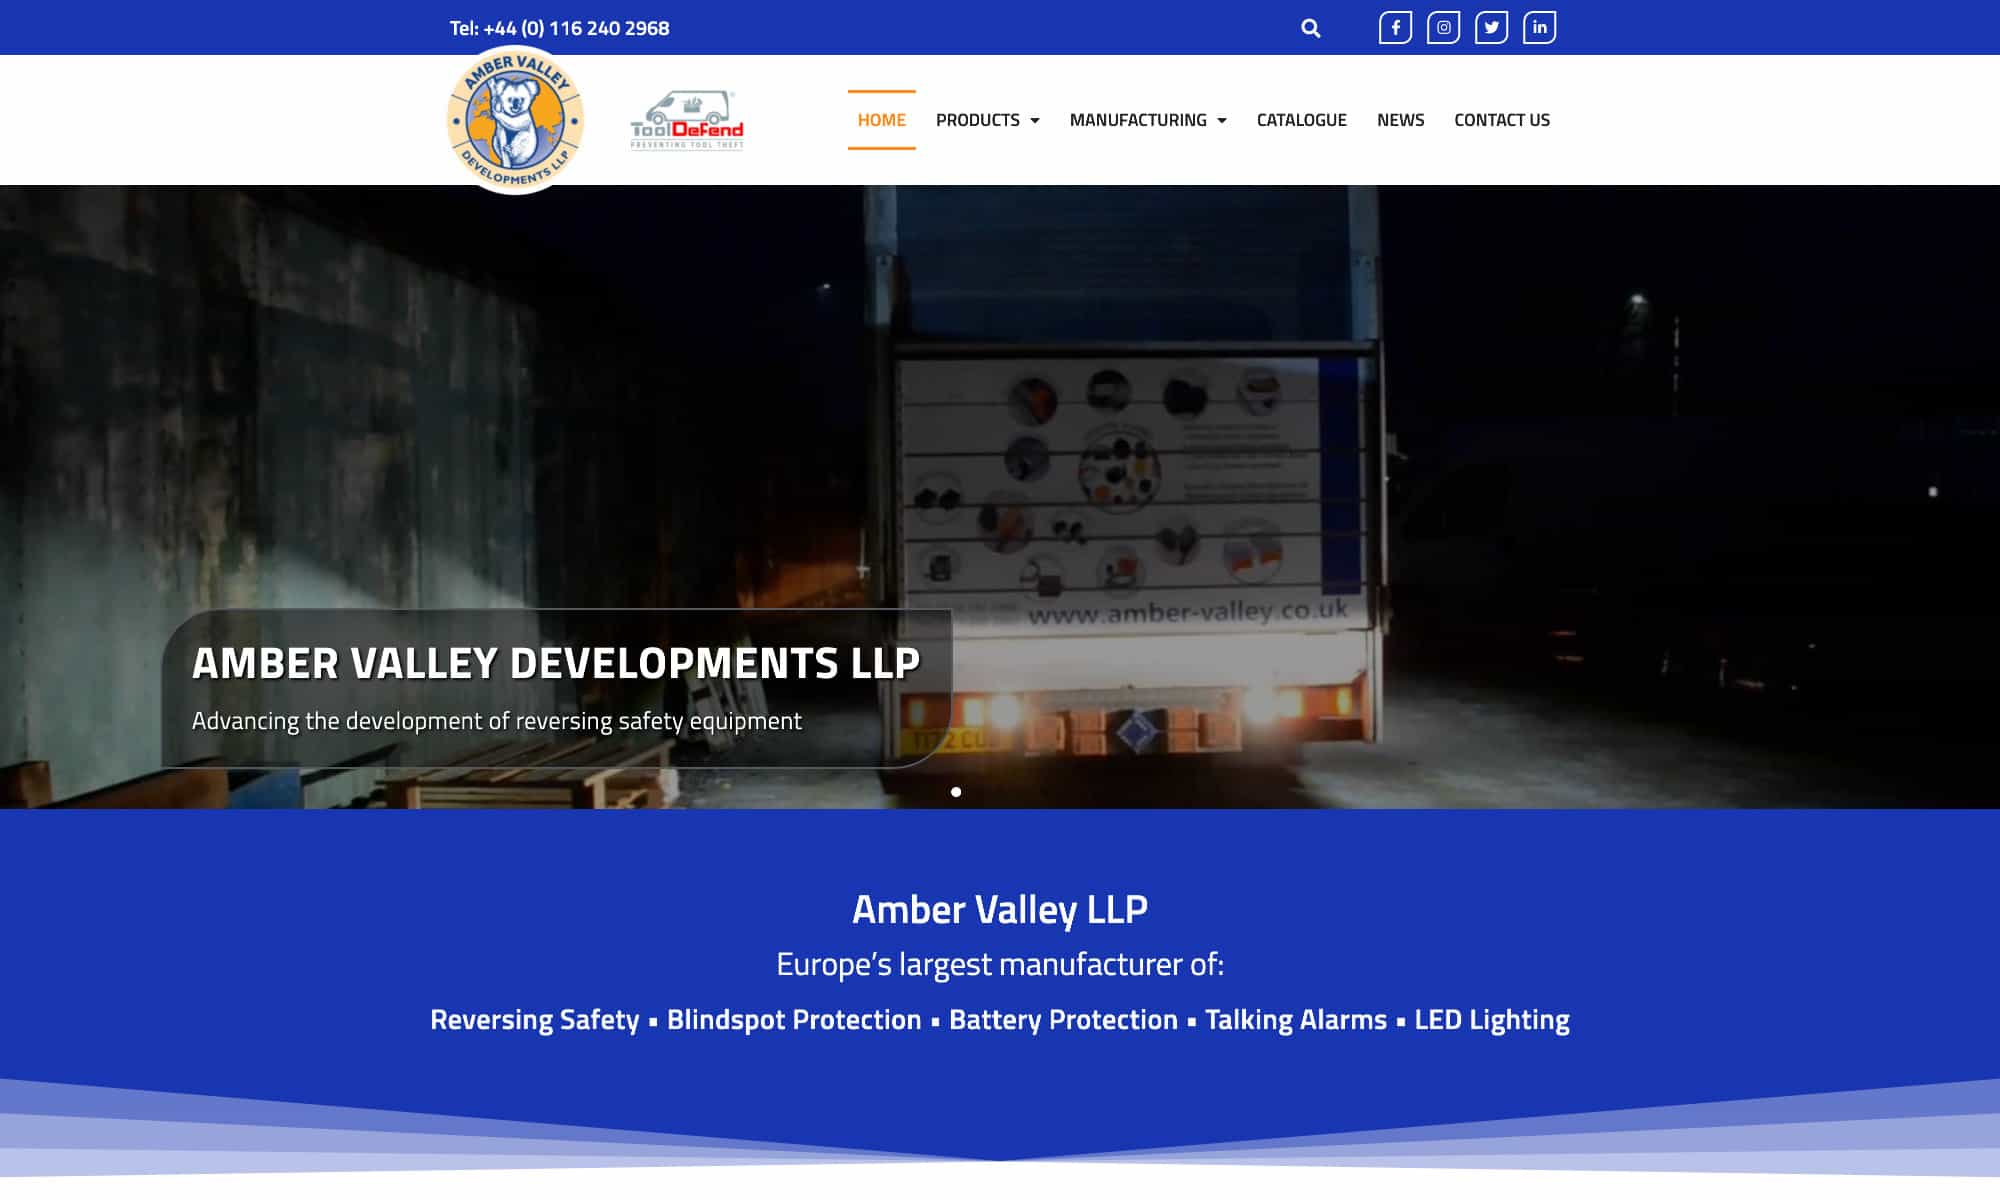 Amber Valley LLP